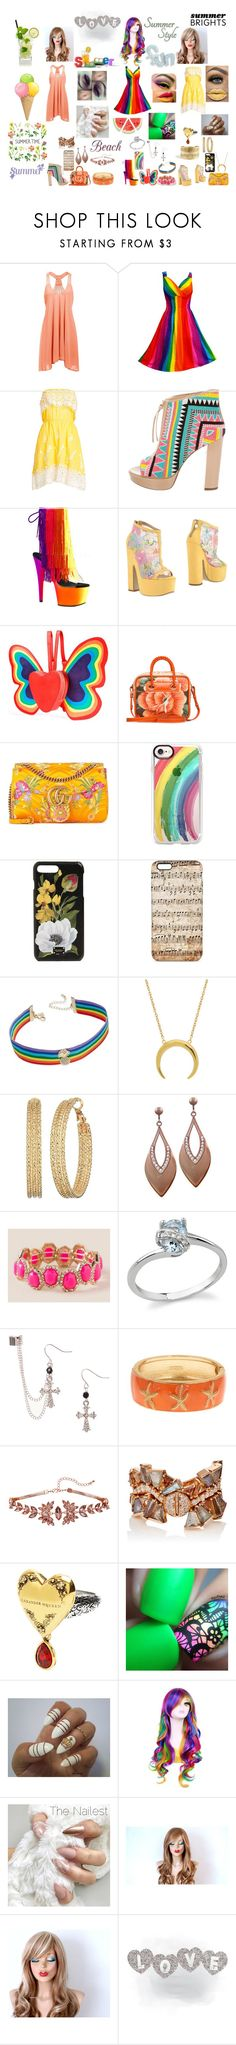 """Fashion #39"" by juli2902 on Polyvore featuring Christophe Sauvat, Jerome C. Rousseau, Pleaser, Alberto Moretti, Current Mood, Balenciaga, Gucci, Casetify, Dolce&Gabbana and INC International Concepts"